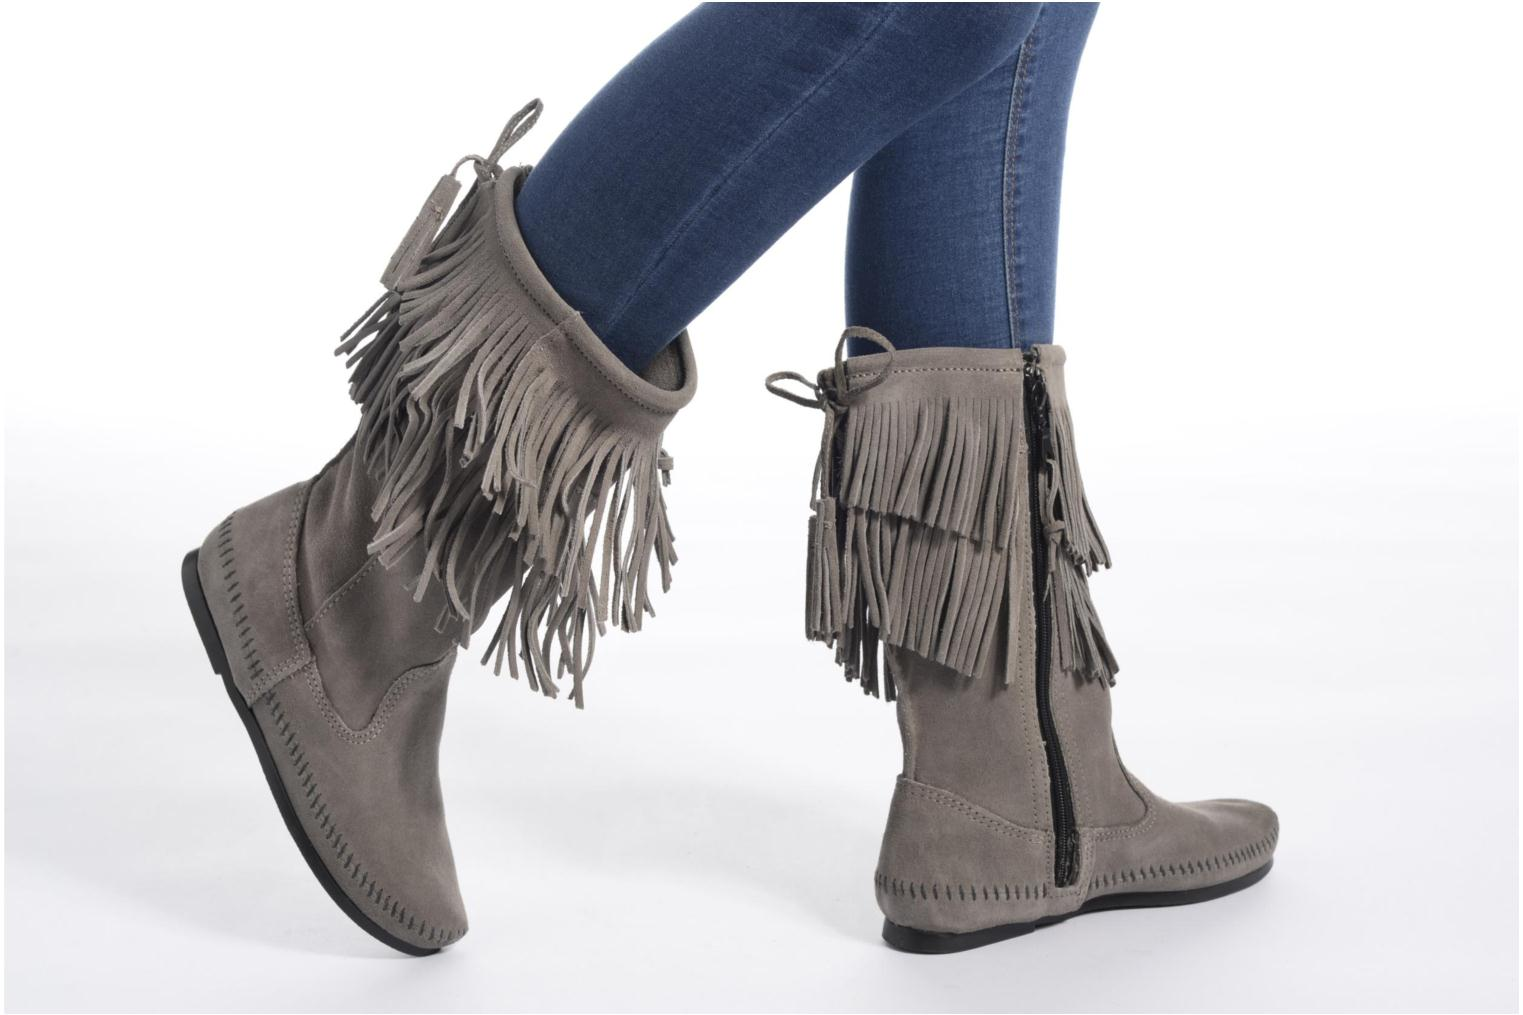 Bottines et boots Minnetonka CALF HI 2LAYER FRINGE Marron vue bas / vue portée sac